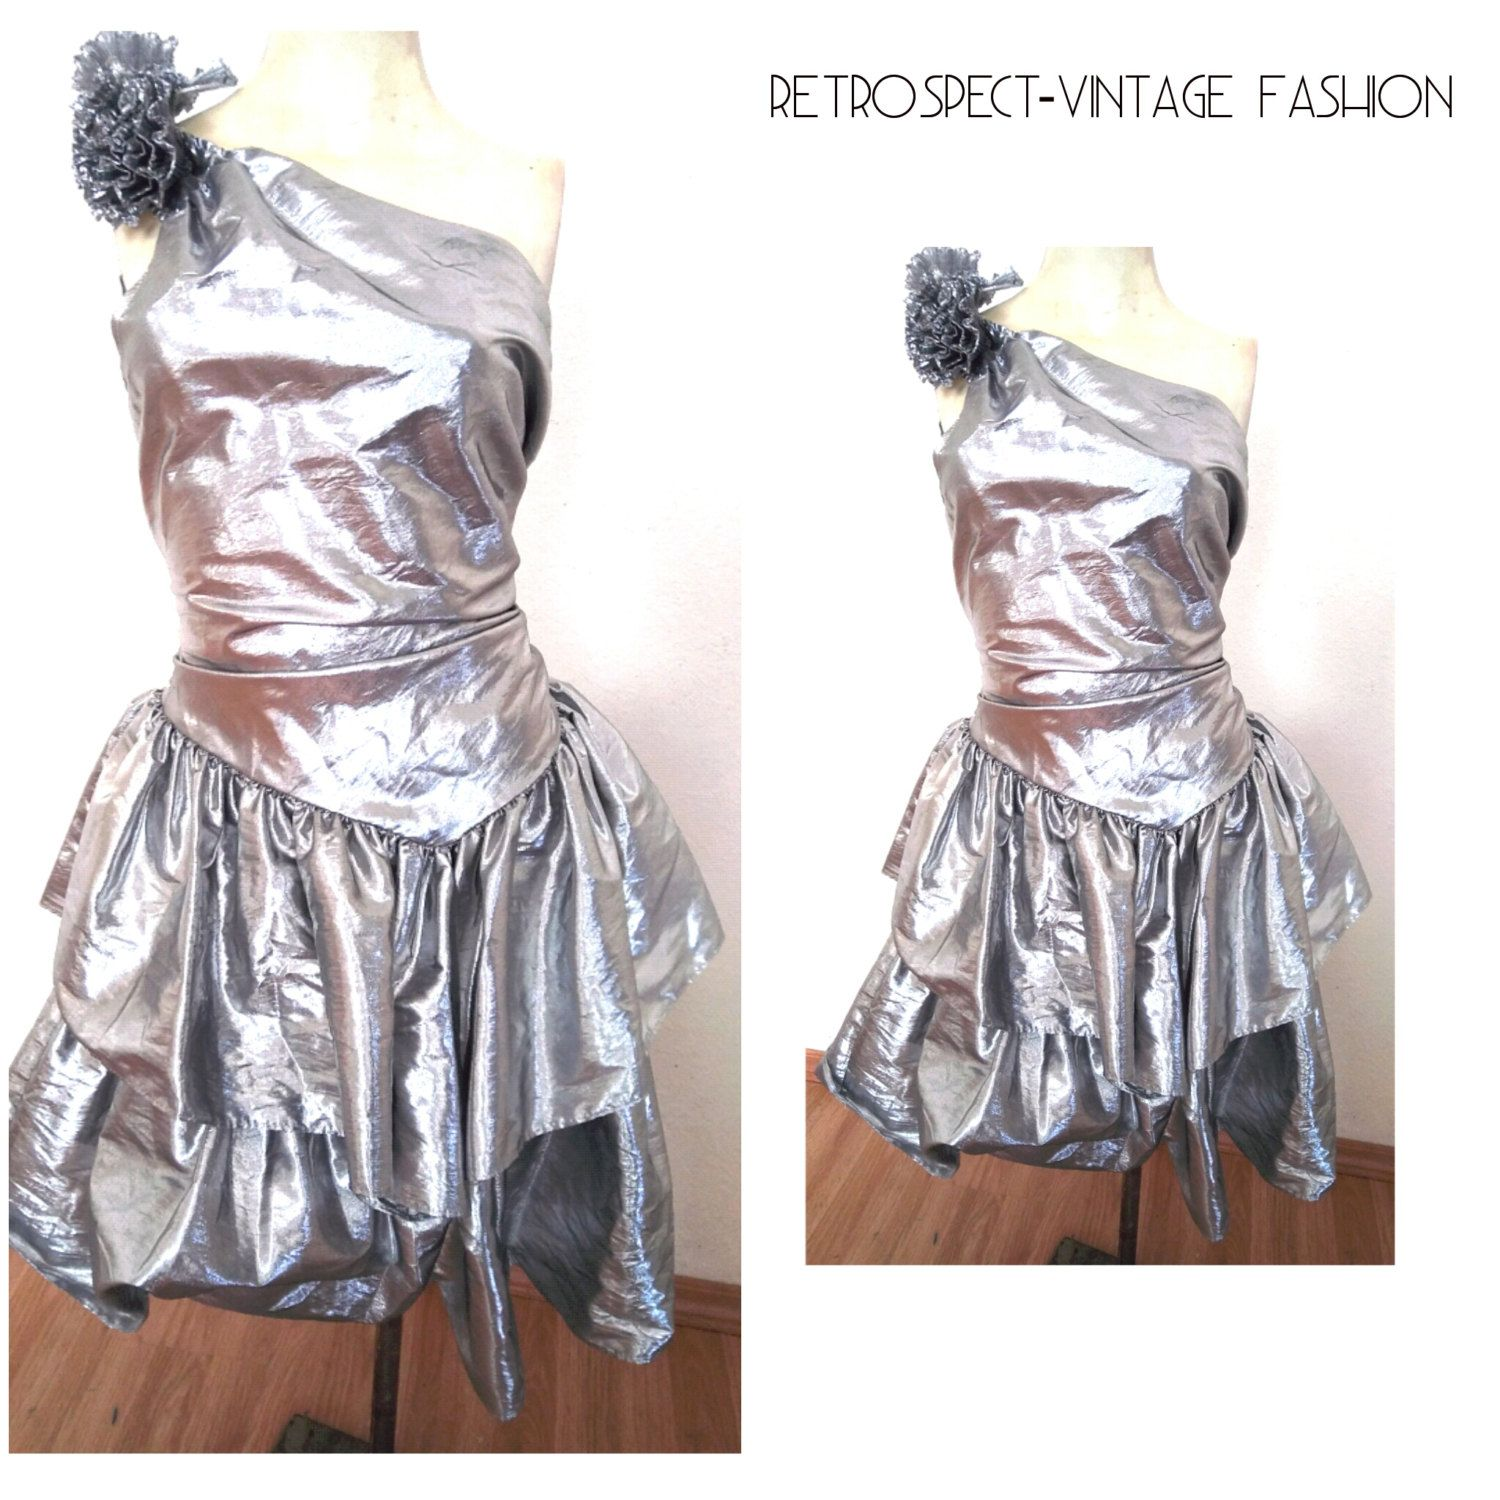 80 S Vintage Prom Dress 80 S Prom Dress Metallic Silver Cocktail Dress With Huge Bow And Ruffles Ruffled Asymetrical Design Size S 80s Prom Dress Prom Dresses Vintage Silver Cocktail Dress [ 1500 x 1500 Pixel ]